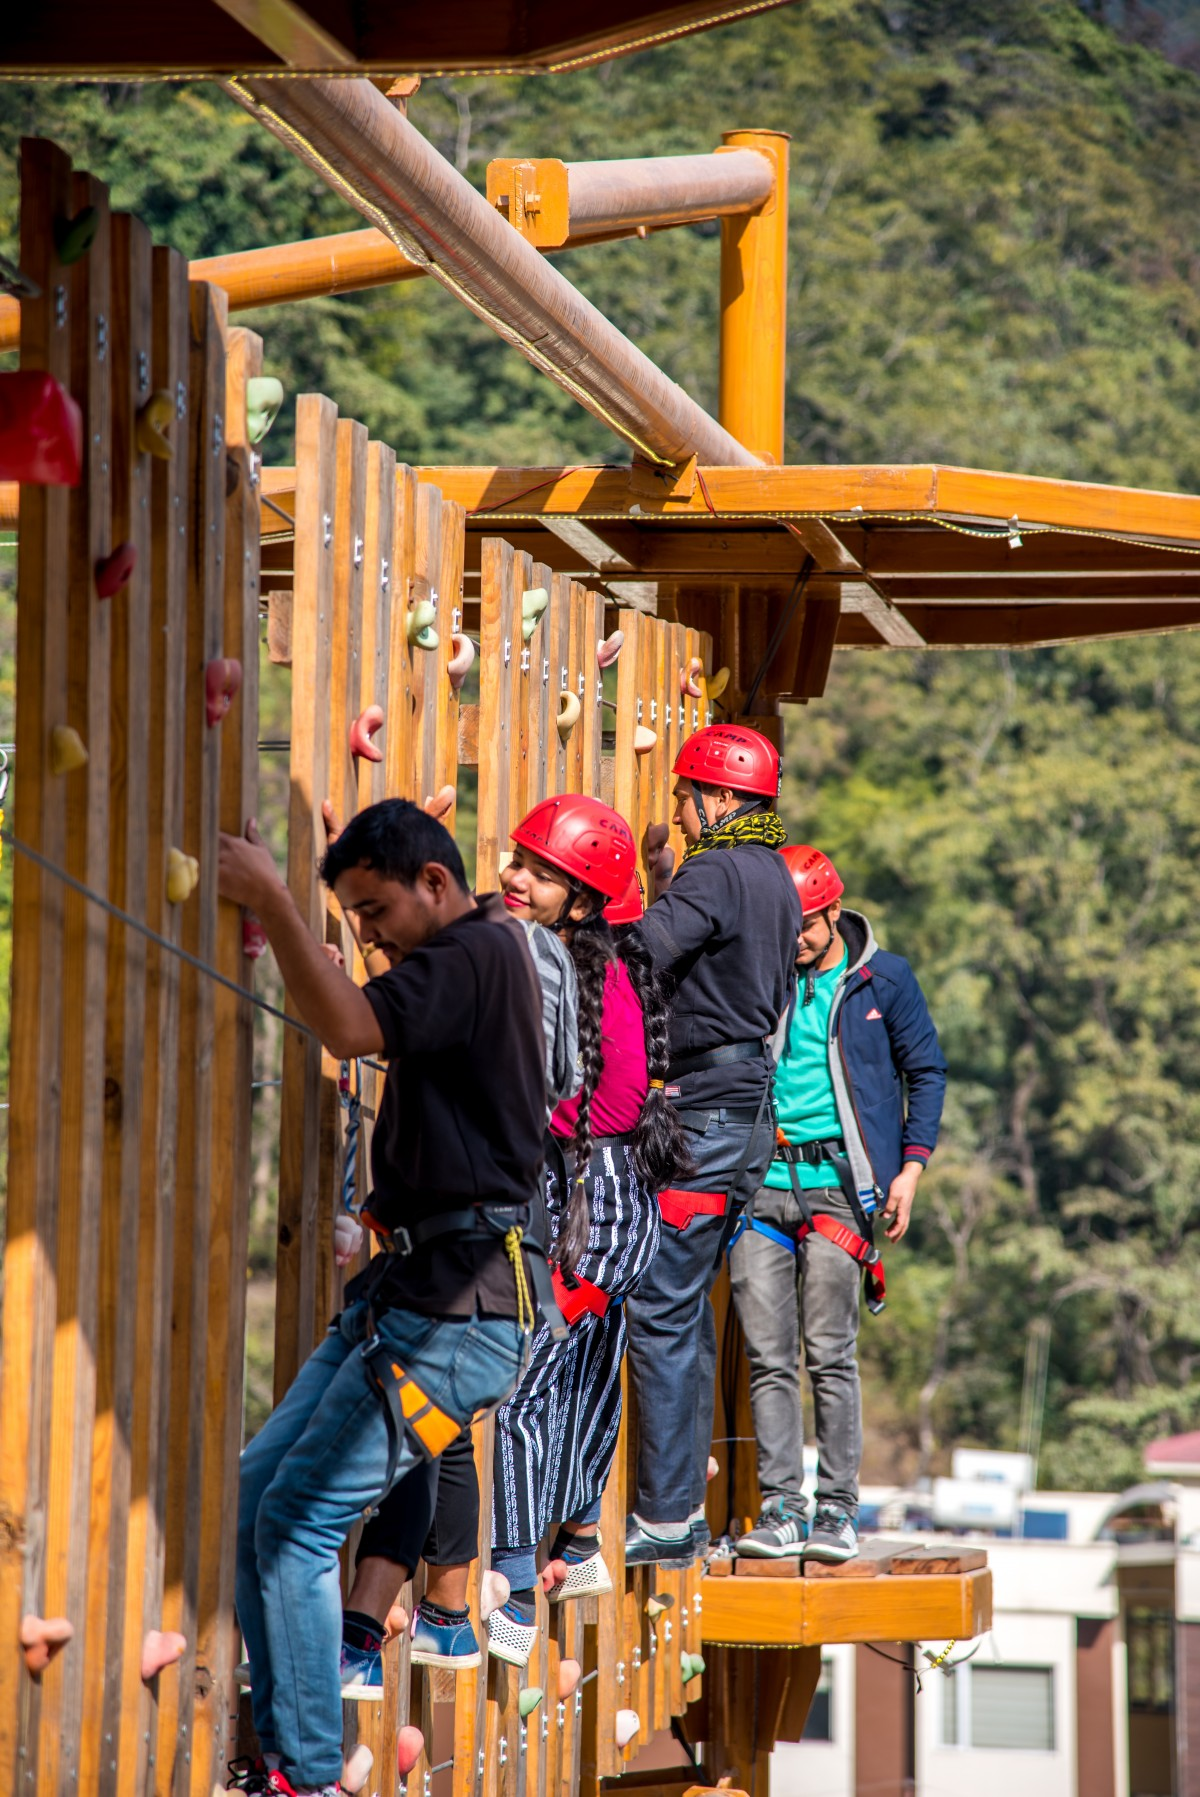 Reverse Bungee High Low Ropes Course Rishikesh Uttarakhand Thrill Factory Park Adventure Travel The Great Next